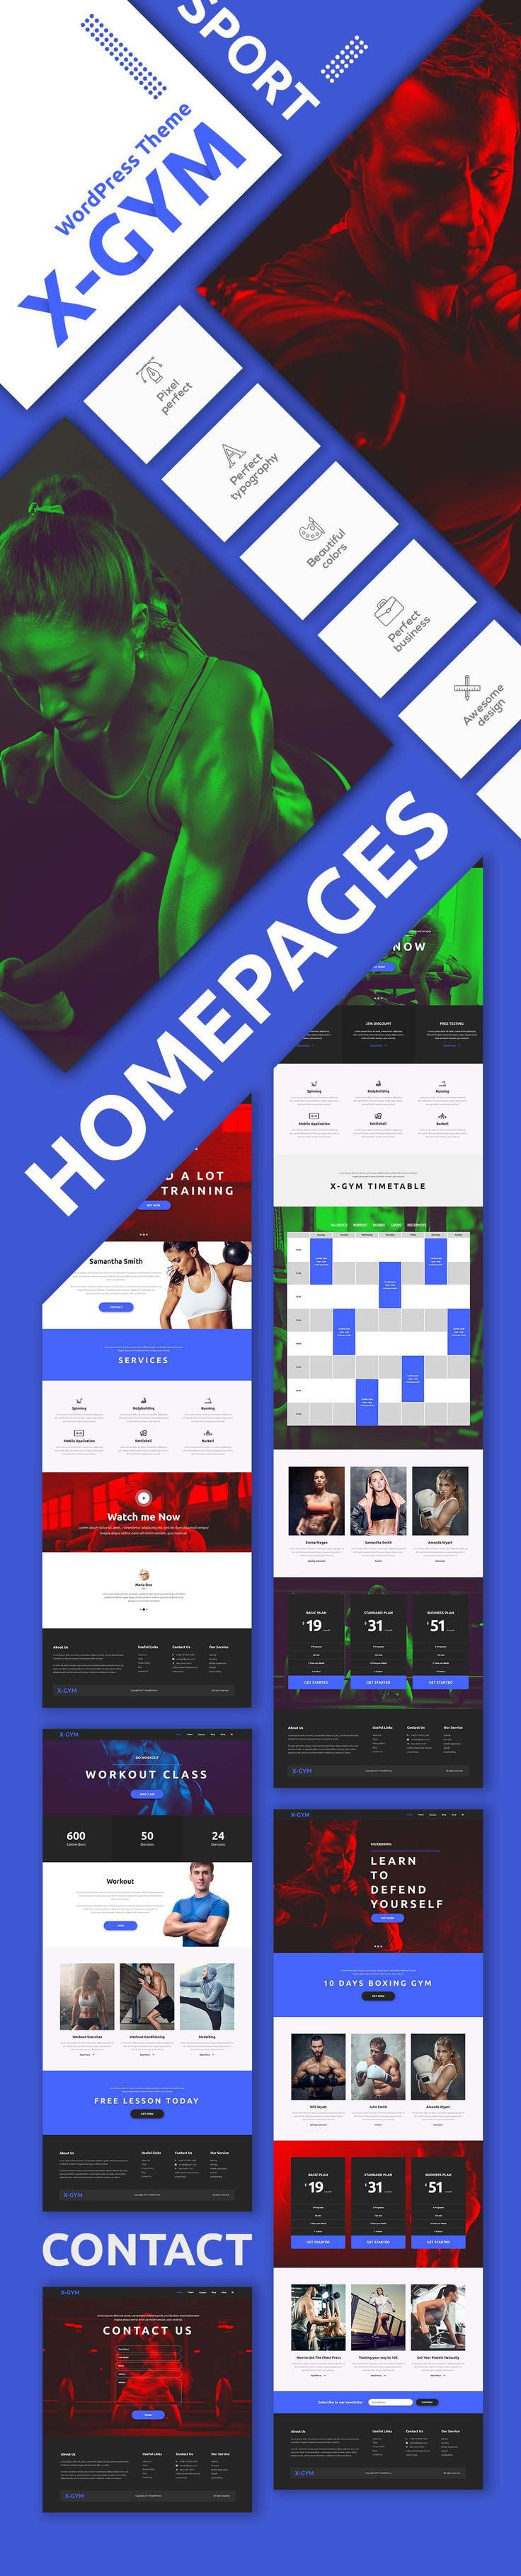 X-Gym - Fitness WordPress Theme for Fitness Clubs, Gyms & Fitness Centers by modeltheme